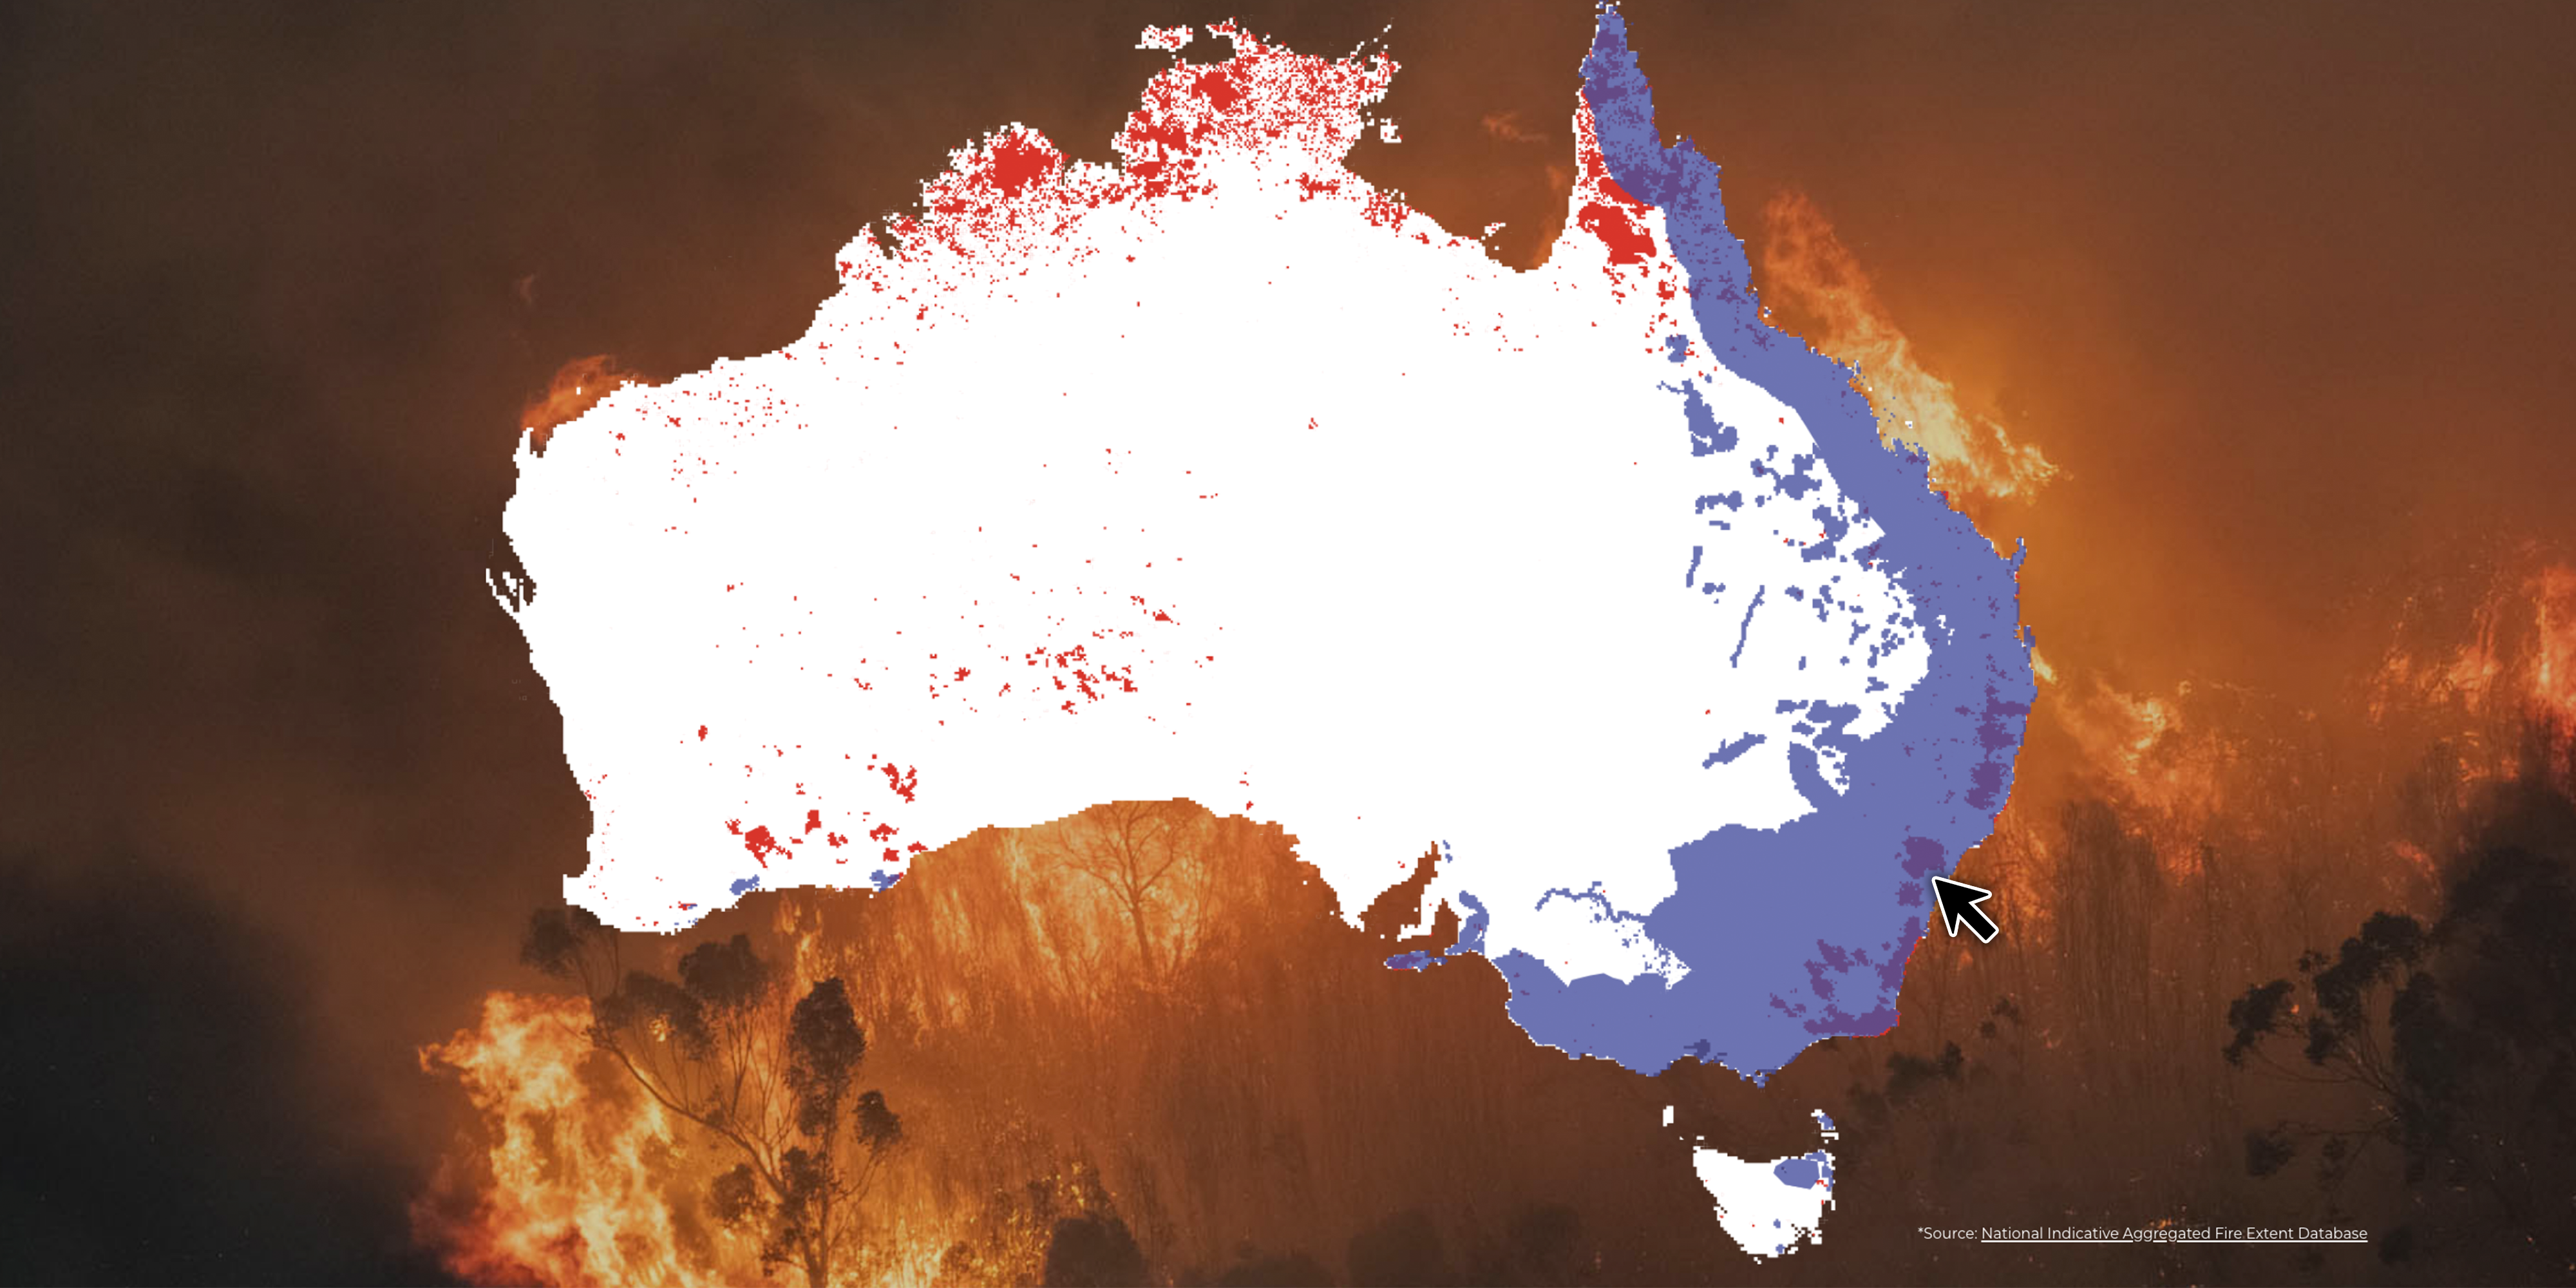 Australia data Summer bushfires: how are the plant and animal survivors 6 months on?